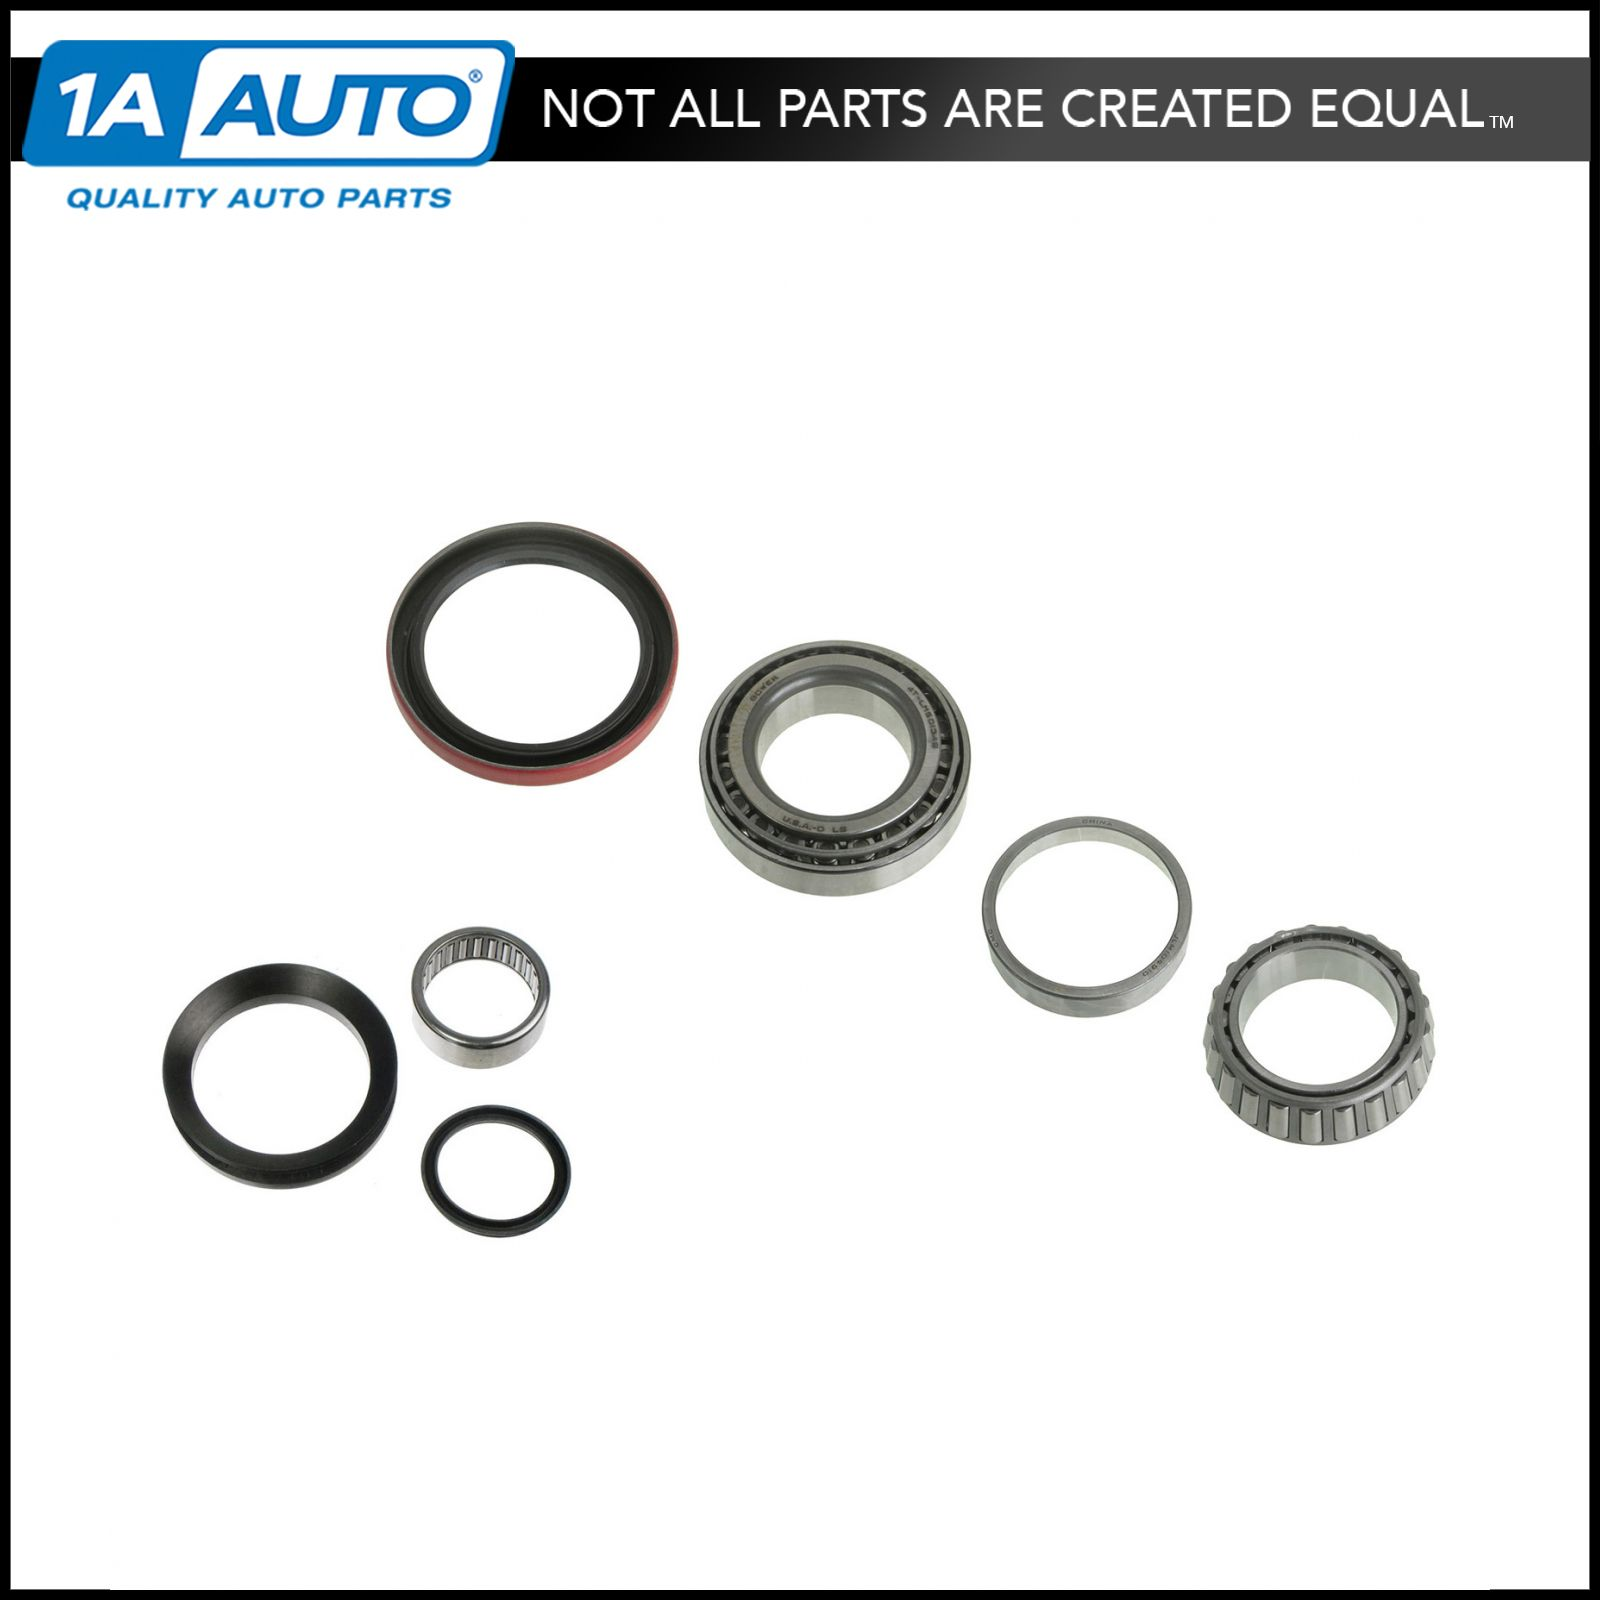 1979 1980 1981 1982 1983 1984 1985 1986 Front Left /& Right Wheel Bearing with Seal Kit Fit GMC C3500 2WD 4WD